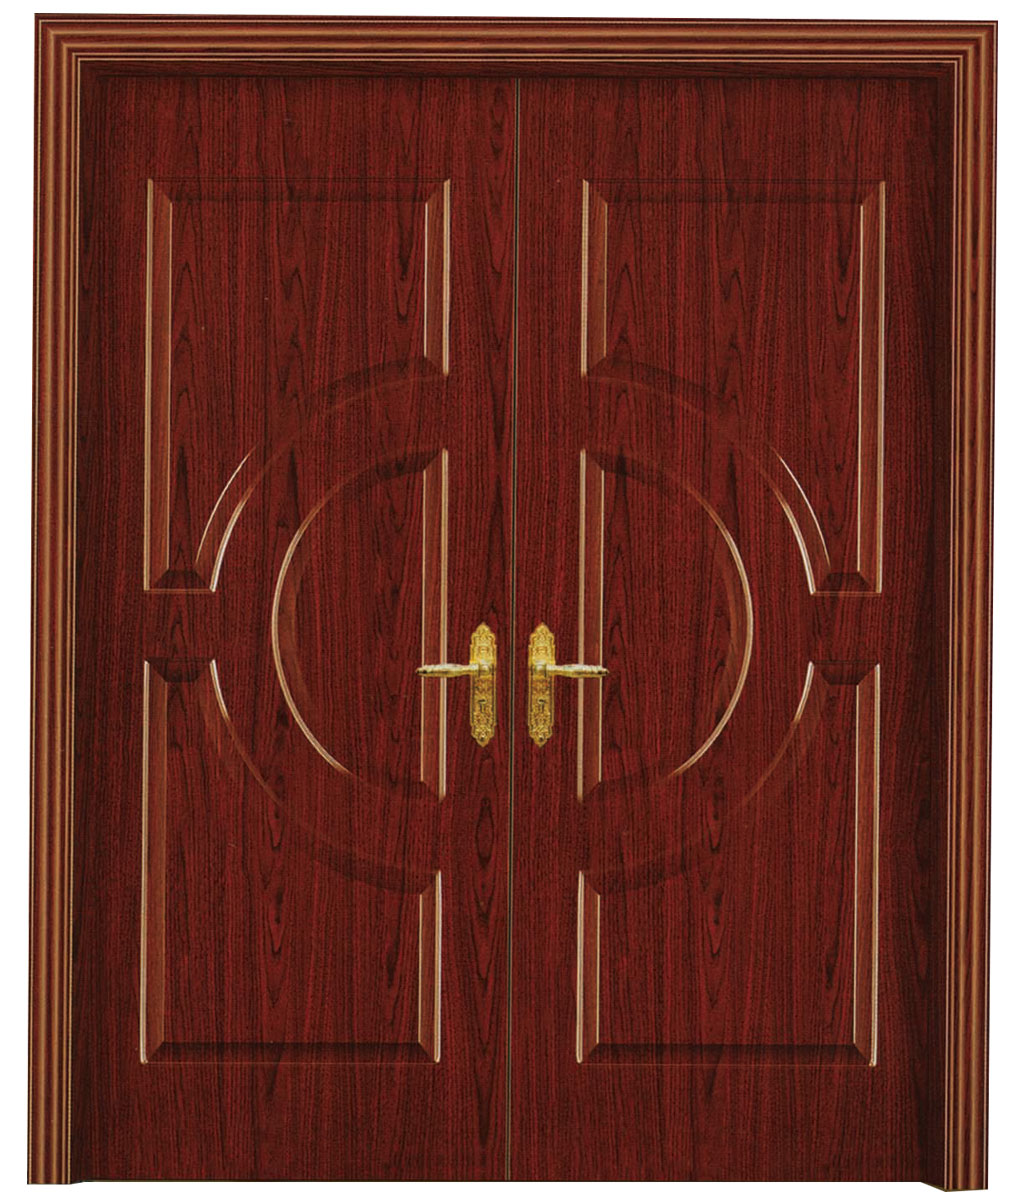 Farnichar door permalink to perfect top doors farnichars photo inspirations - Wood farnichar ...